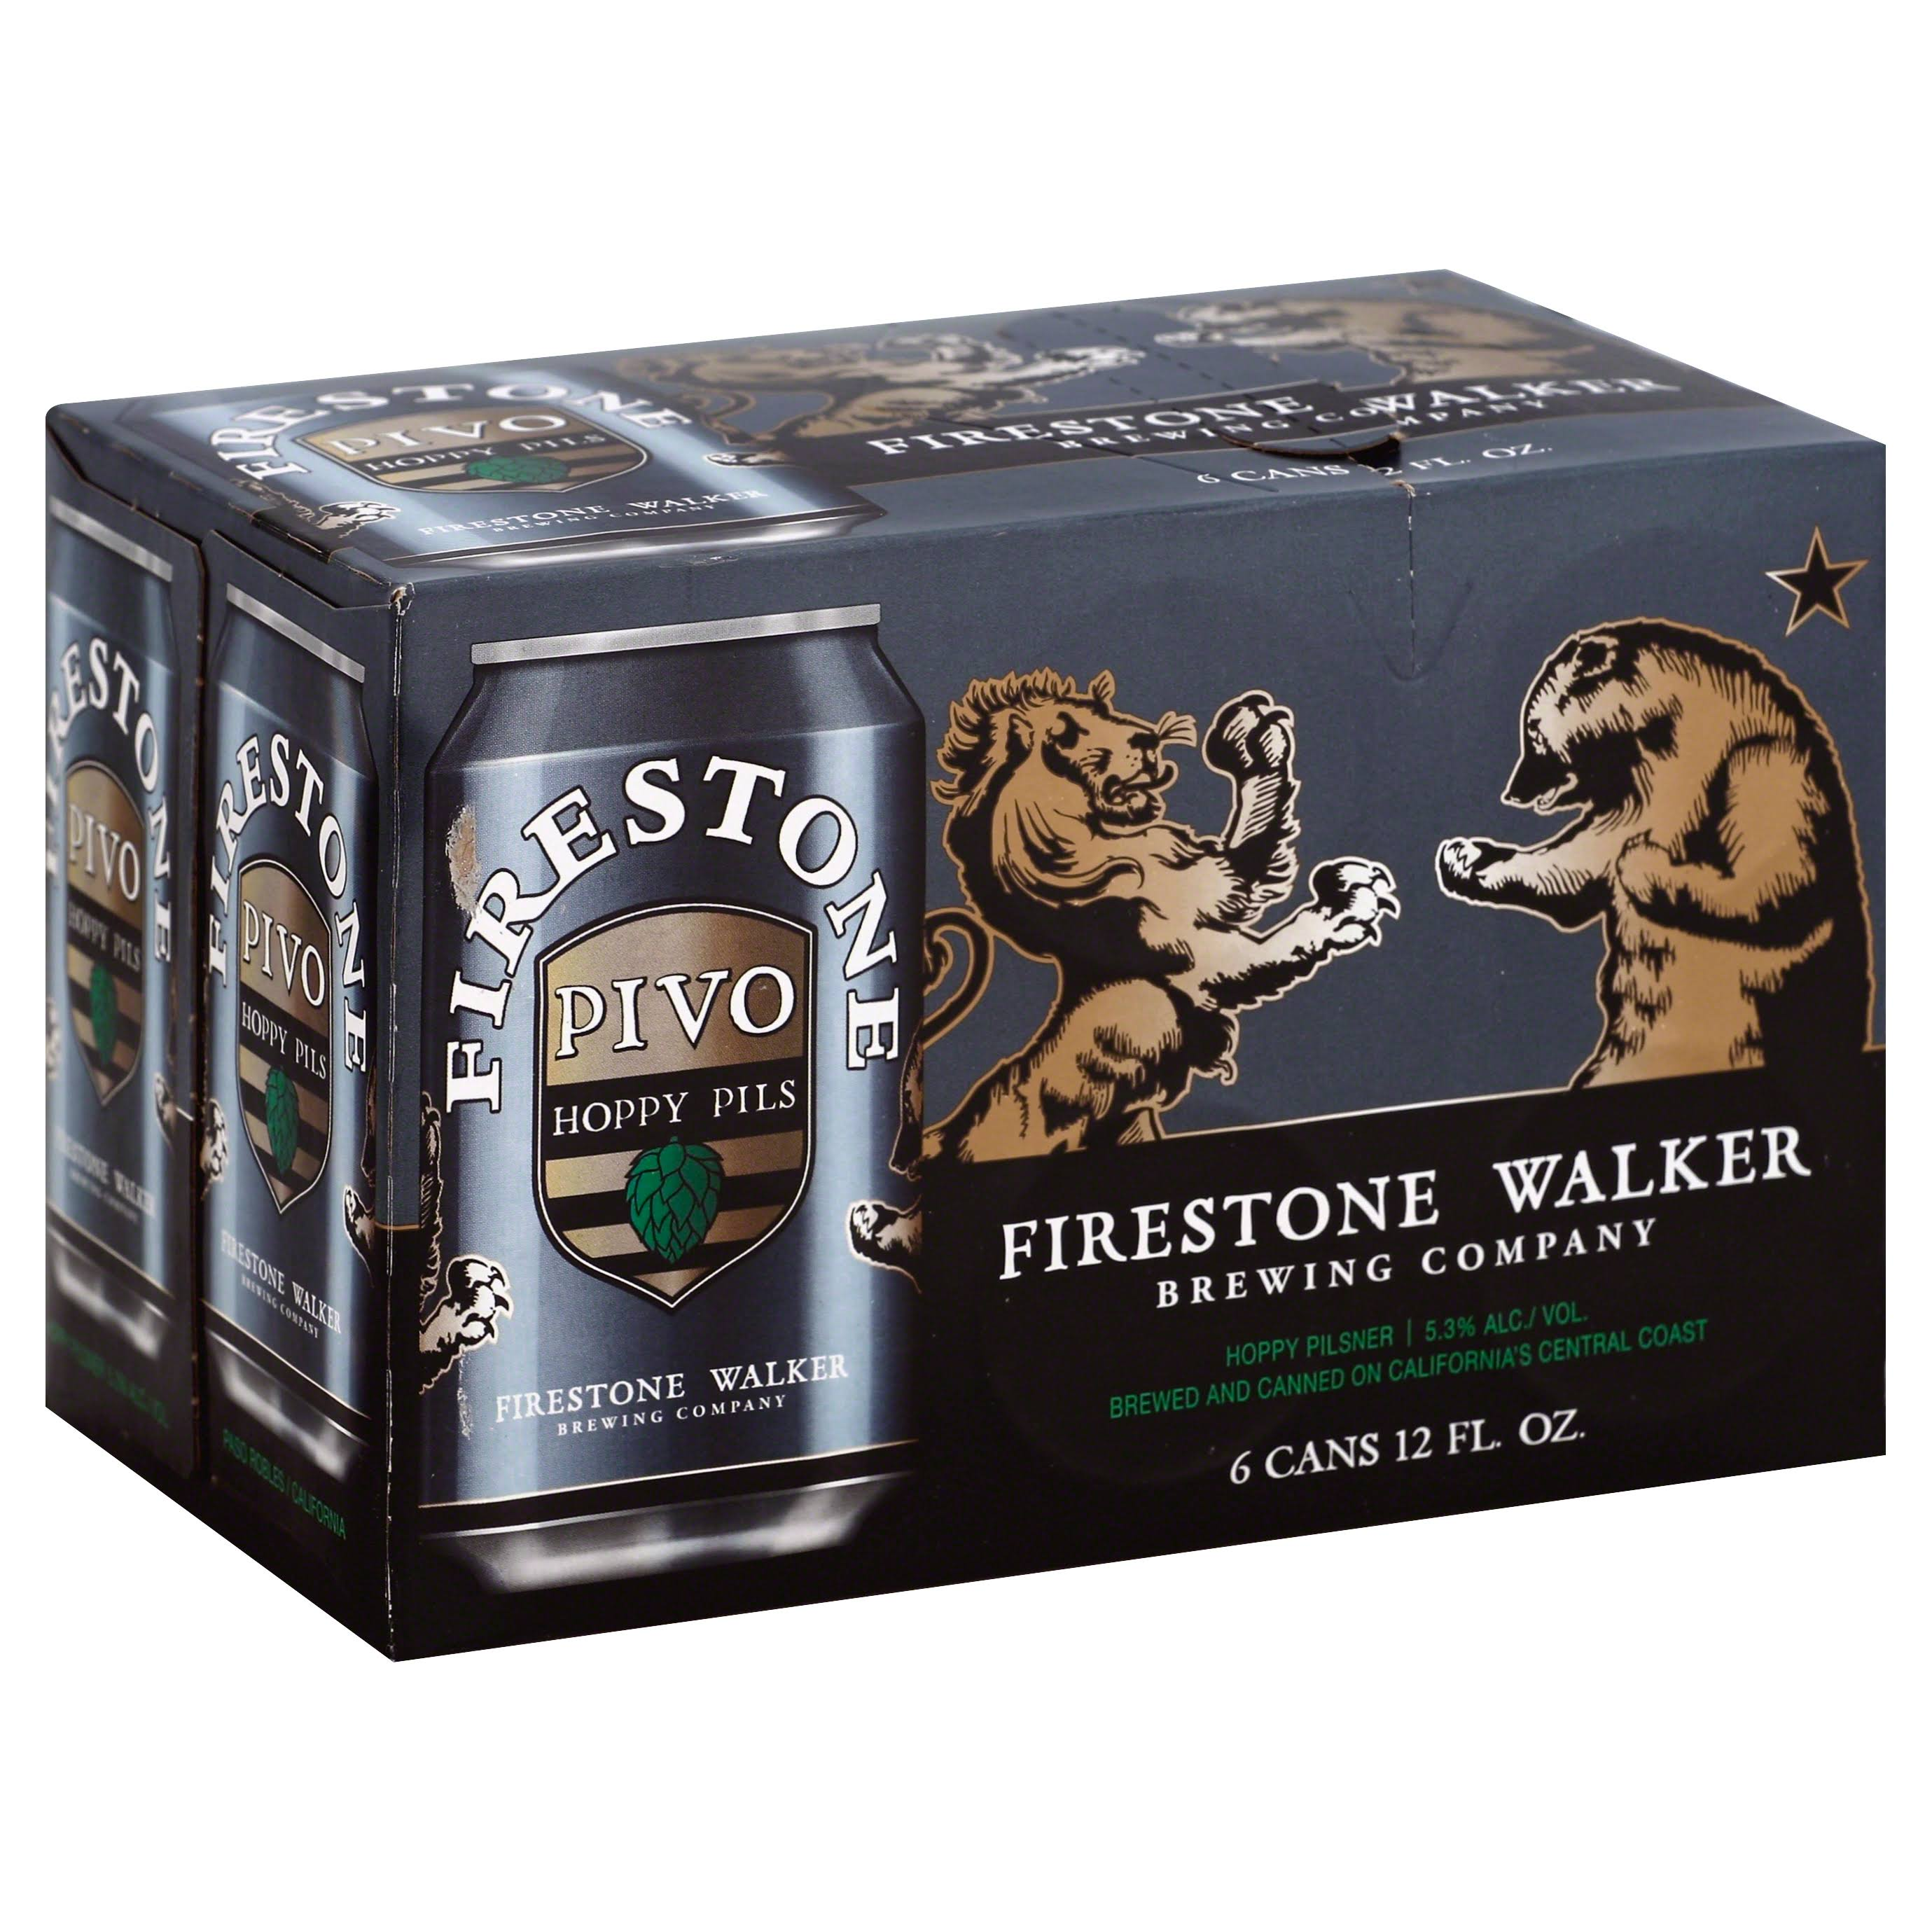 Firestone Walker Pivo Hoppy Pils Double Barrel Ale - 6 pack, 12 fl oz cans